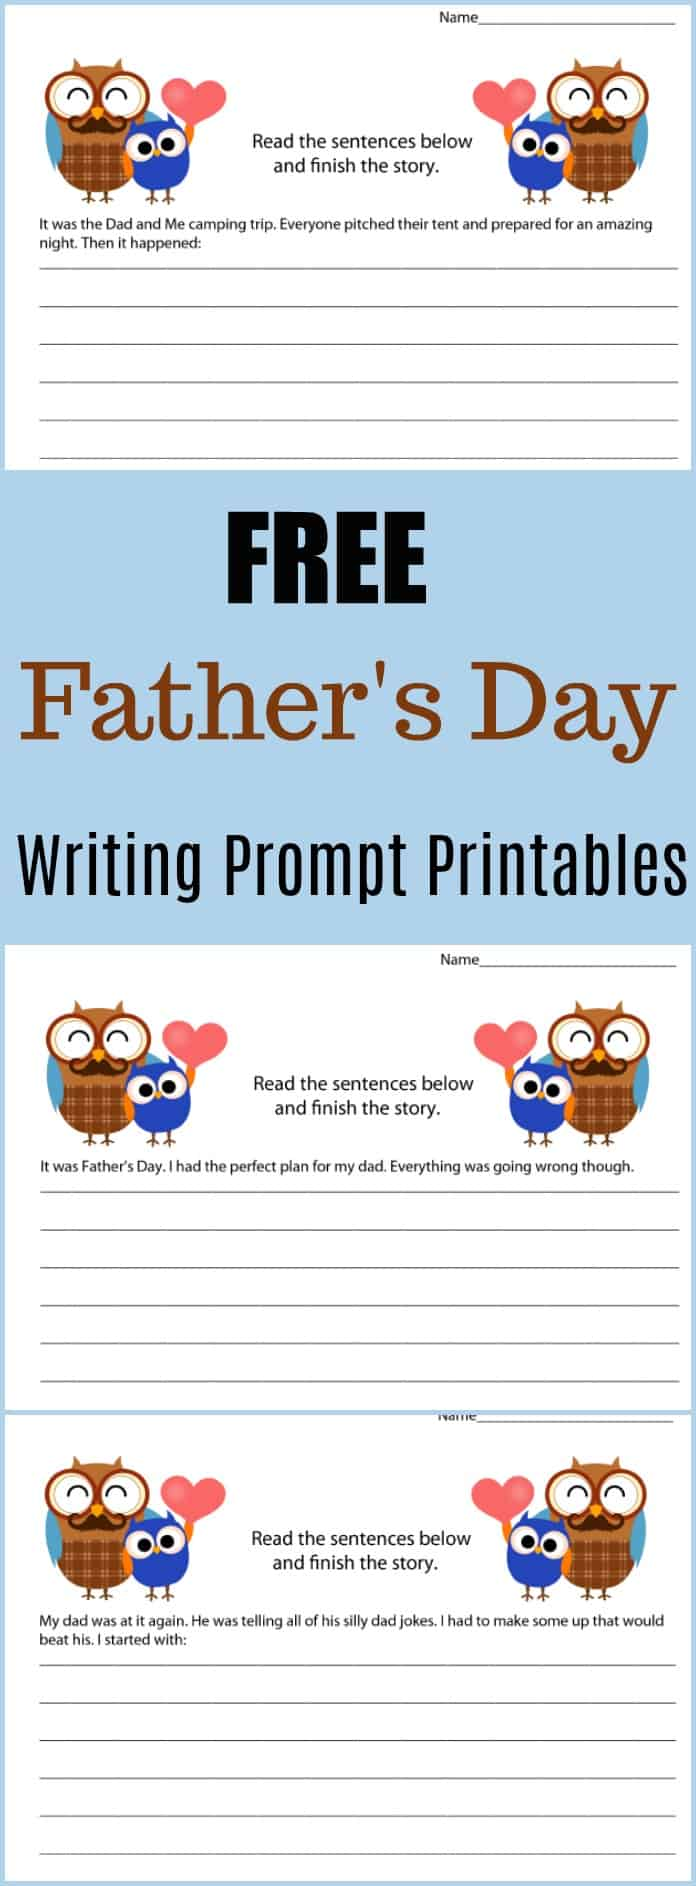 Free Father's Day Writing Prompt Printables